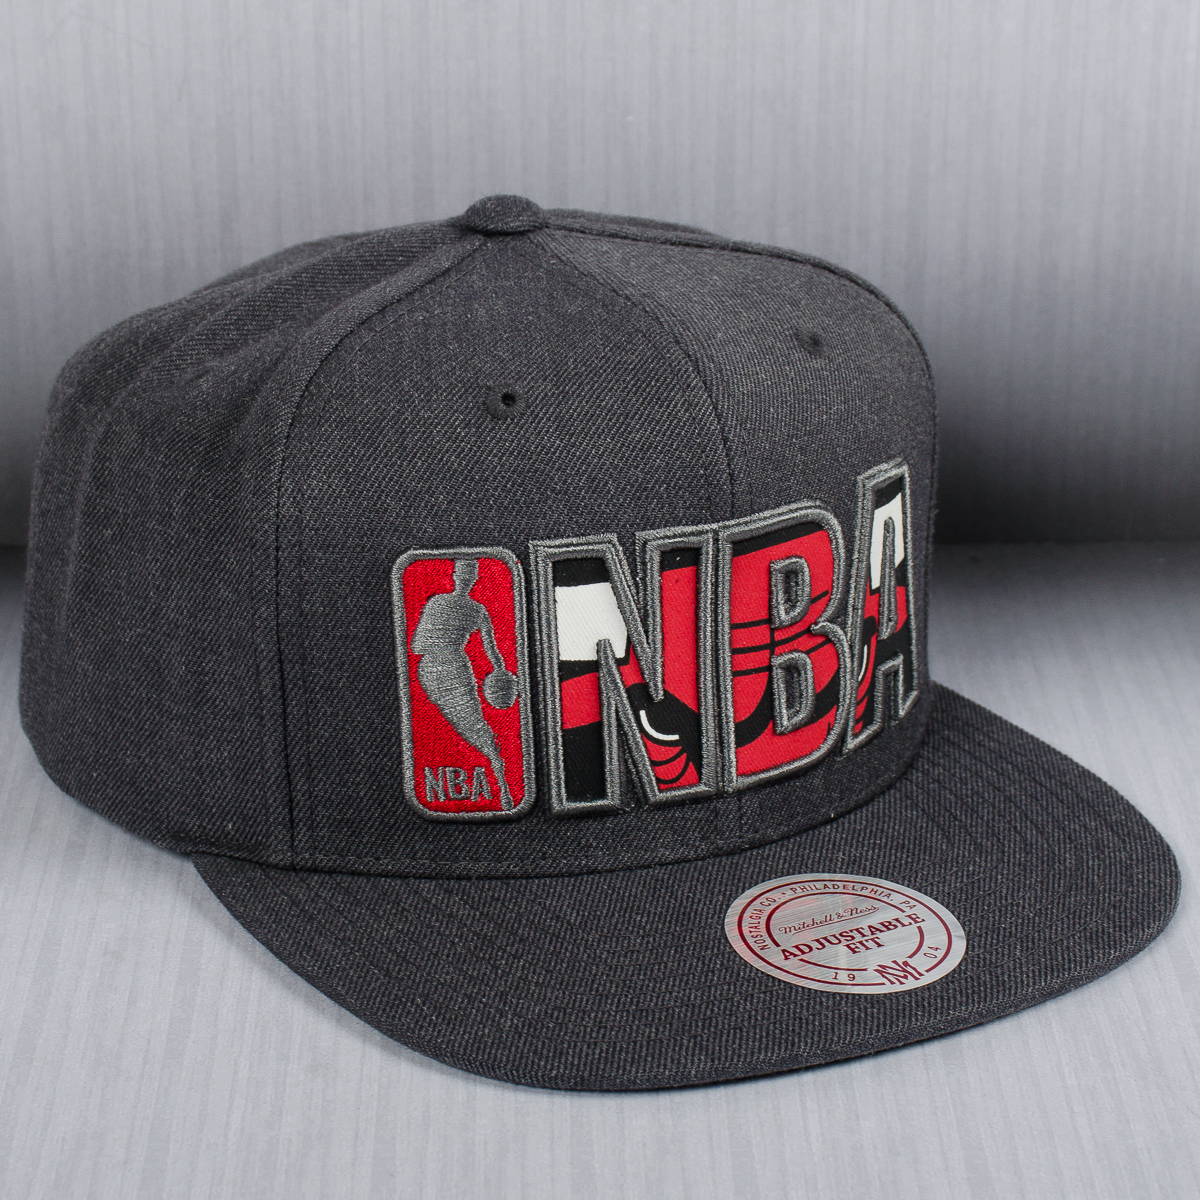 promo code f89c5 5f7a6 Mitchell   Ness NBA Chicago Bulls Insider Reflective Snapback Cap - NBA Shop  Chicago Bulls Merchandise - Superfanas.lt